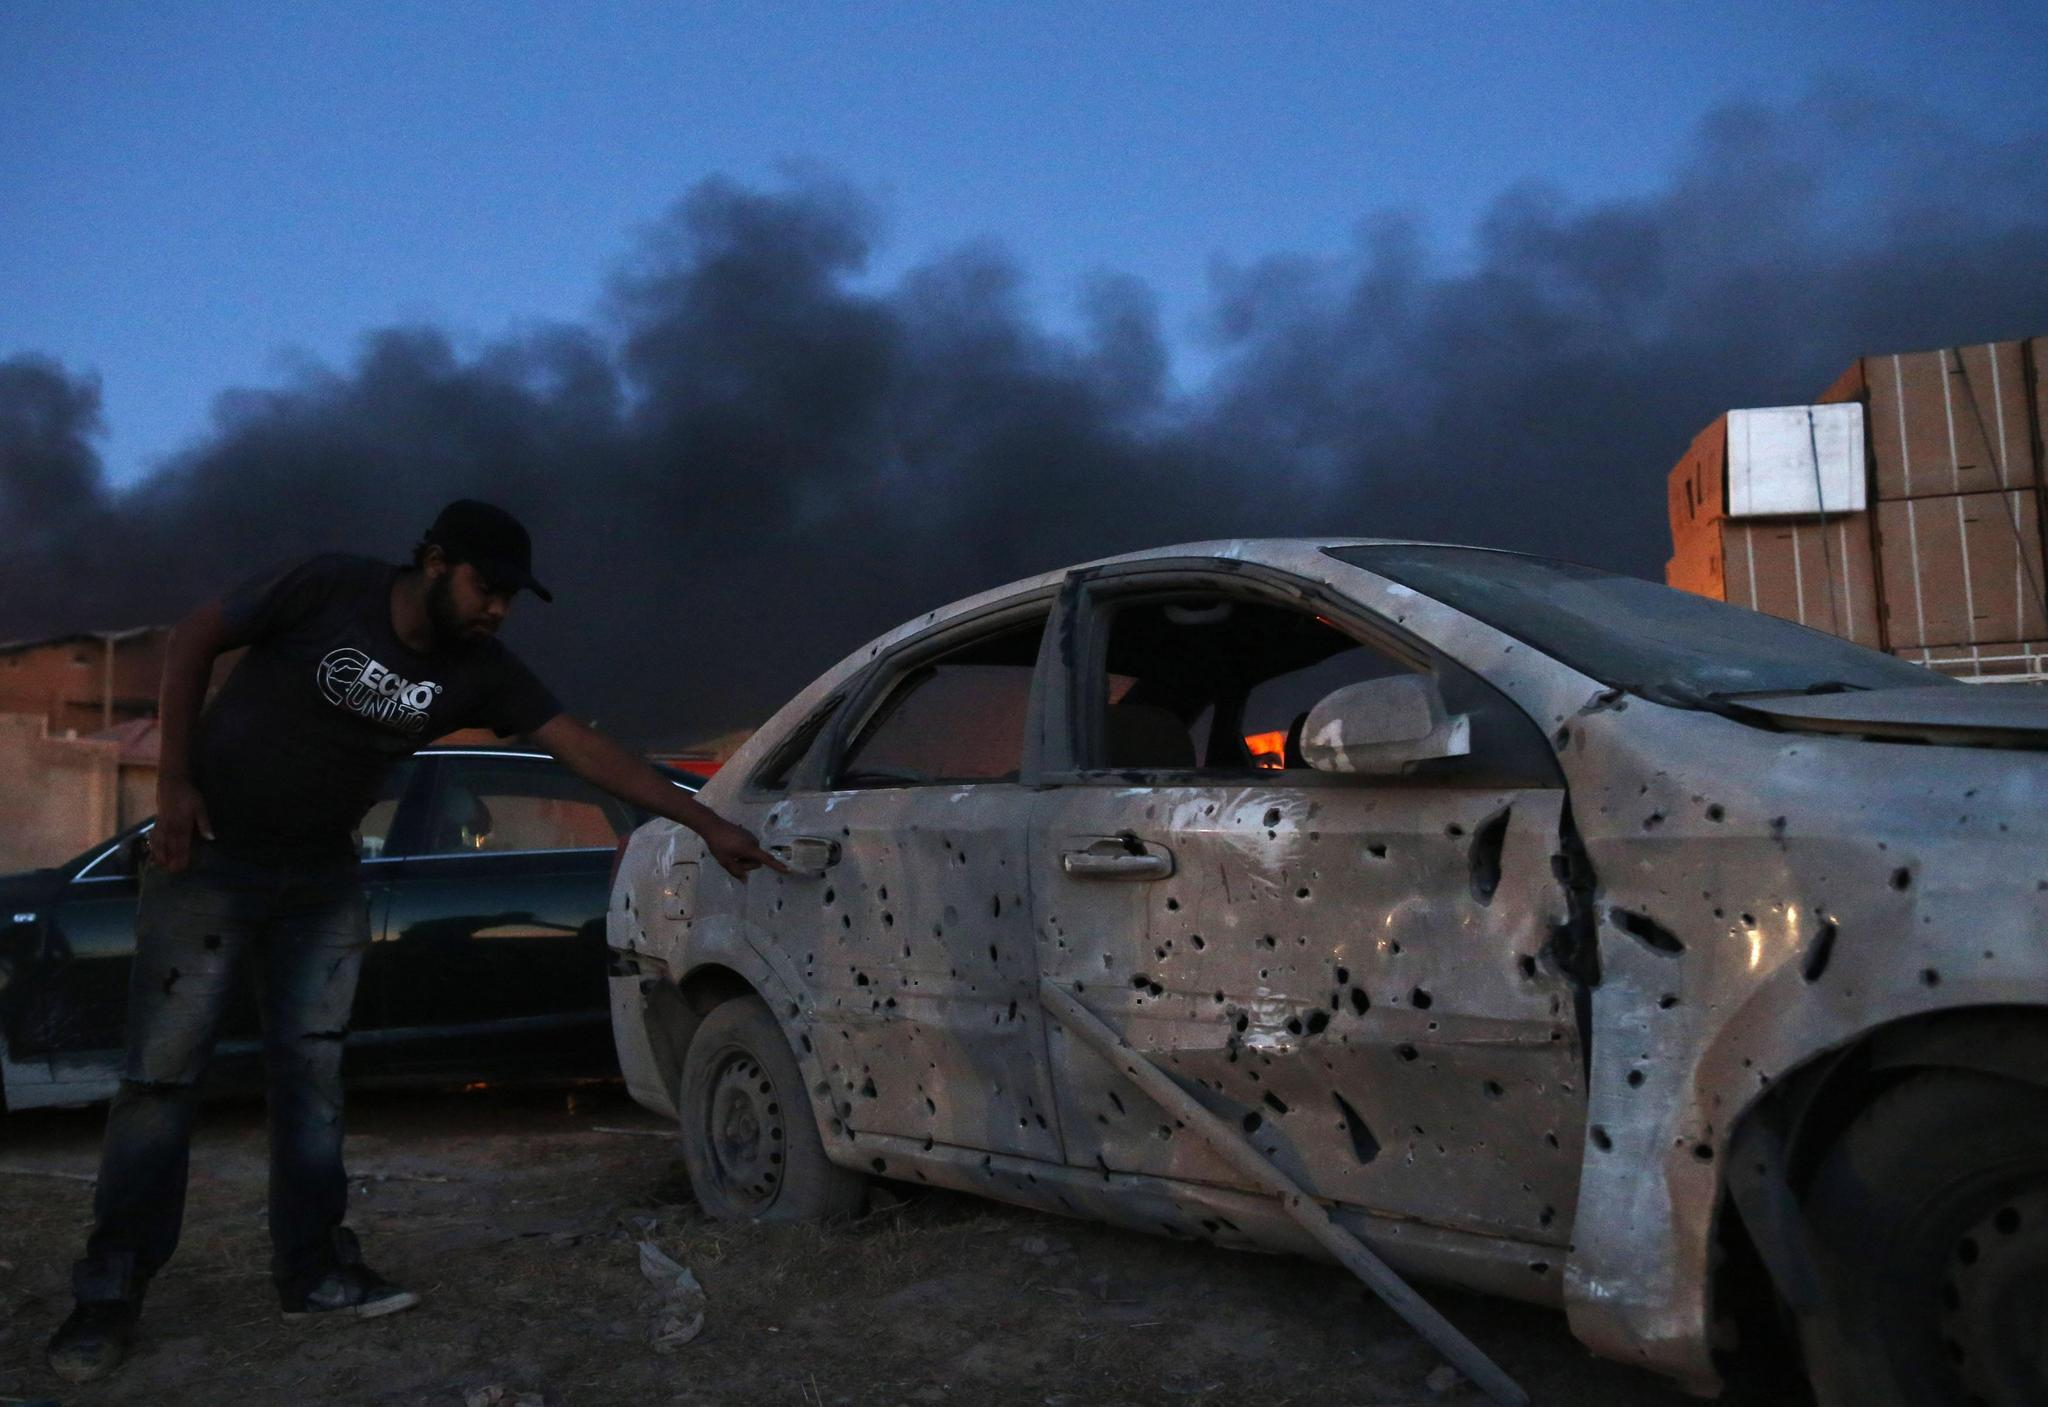 A man points to a damaged car, parked near warehouses that according to local media reports were targeted by Grad rockets fired by irregular forces loyal to former Libyan army general Khalifa Haftar in Benghazi June 5, 2014. The attack is part of a campaign by irregular forces loyal to Haftar who earlier in May launched operations against Islamist militants.